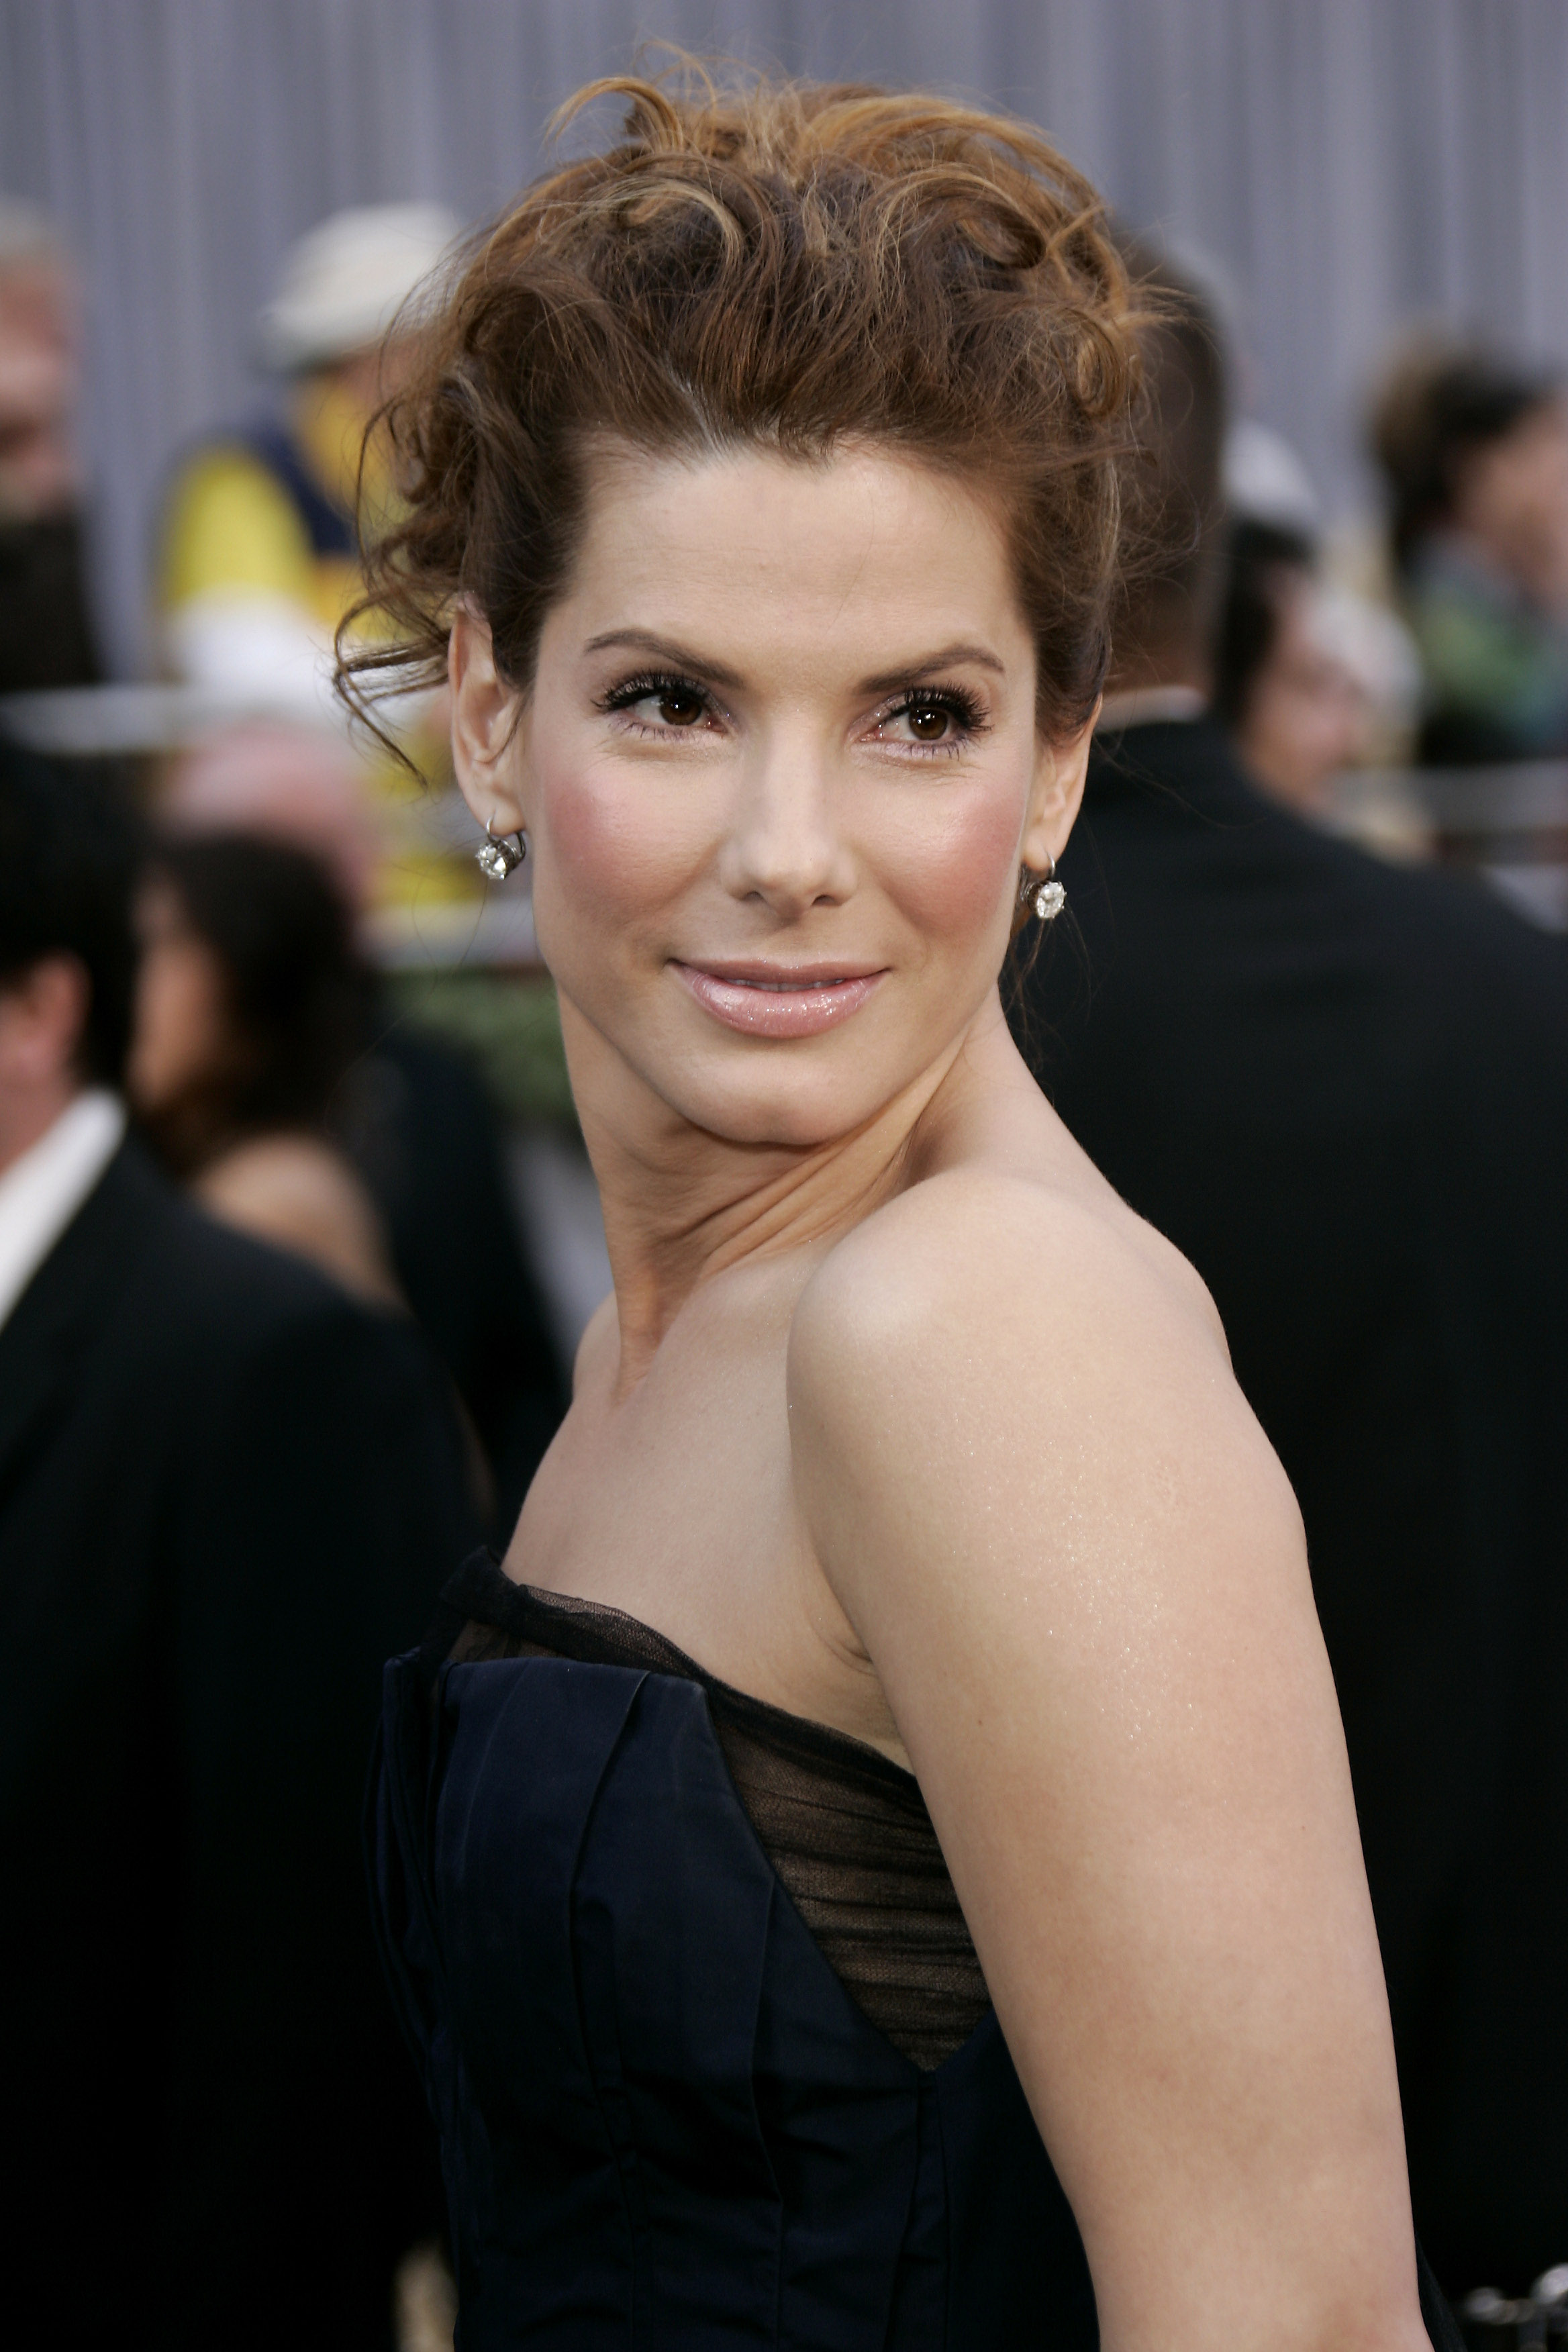 Sandra Bullock - Film Actress, Actress, Film Actor/Film ...